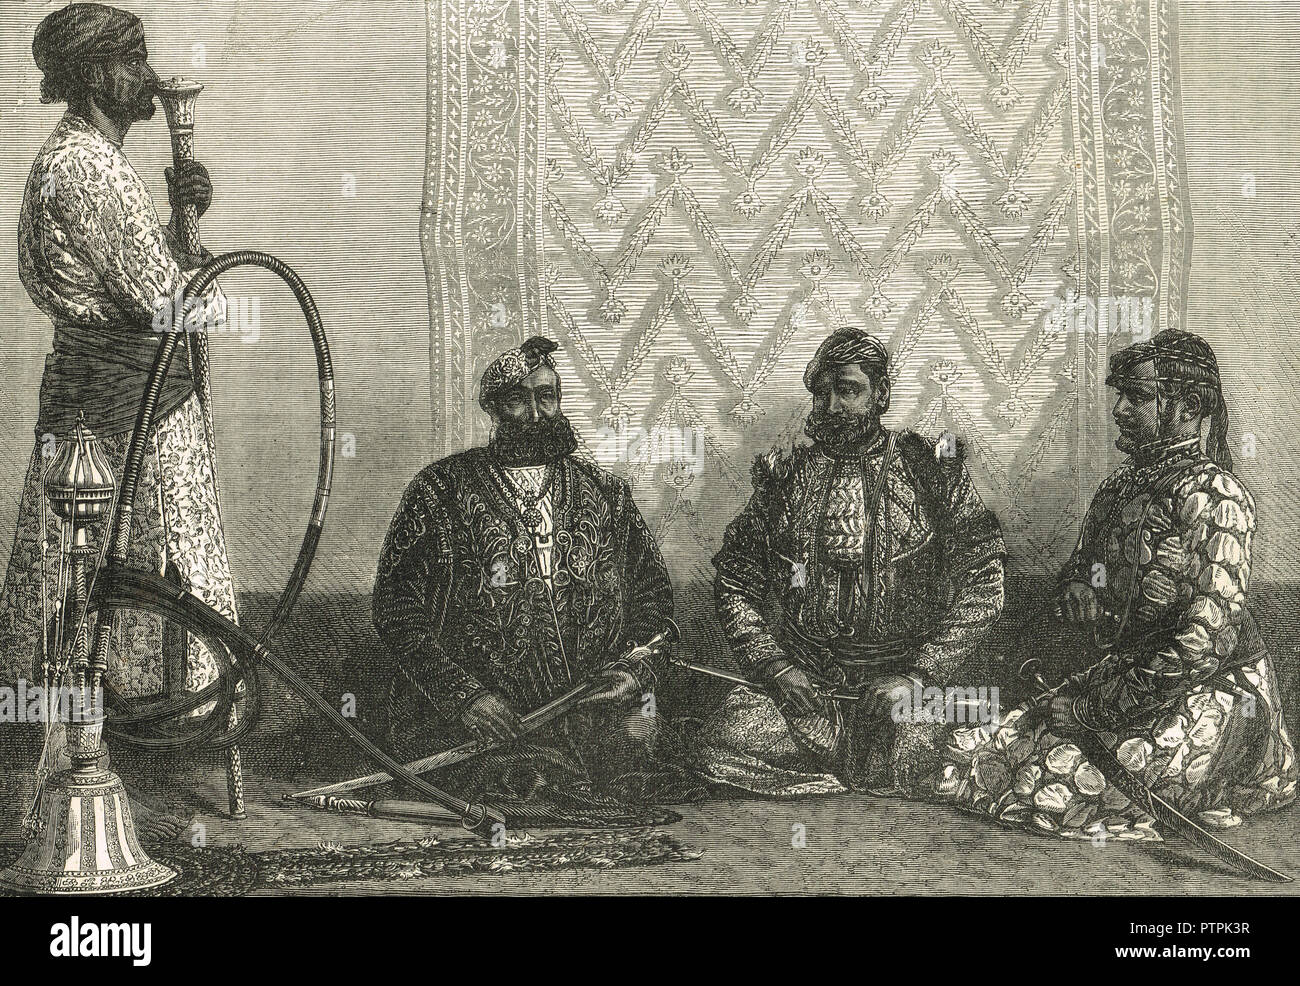 Zamindars and Rajas, of the Northern provinces of Hindustan, India in the 19th Century - Stock Image